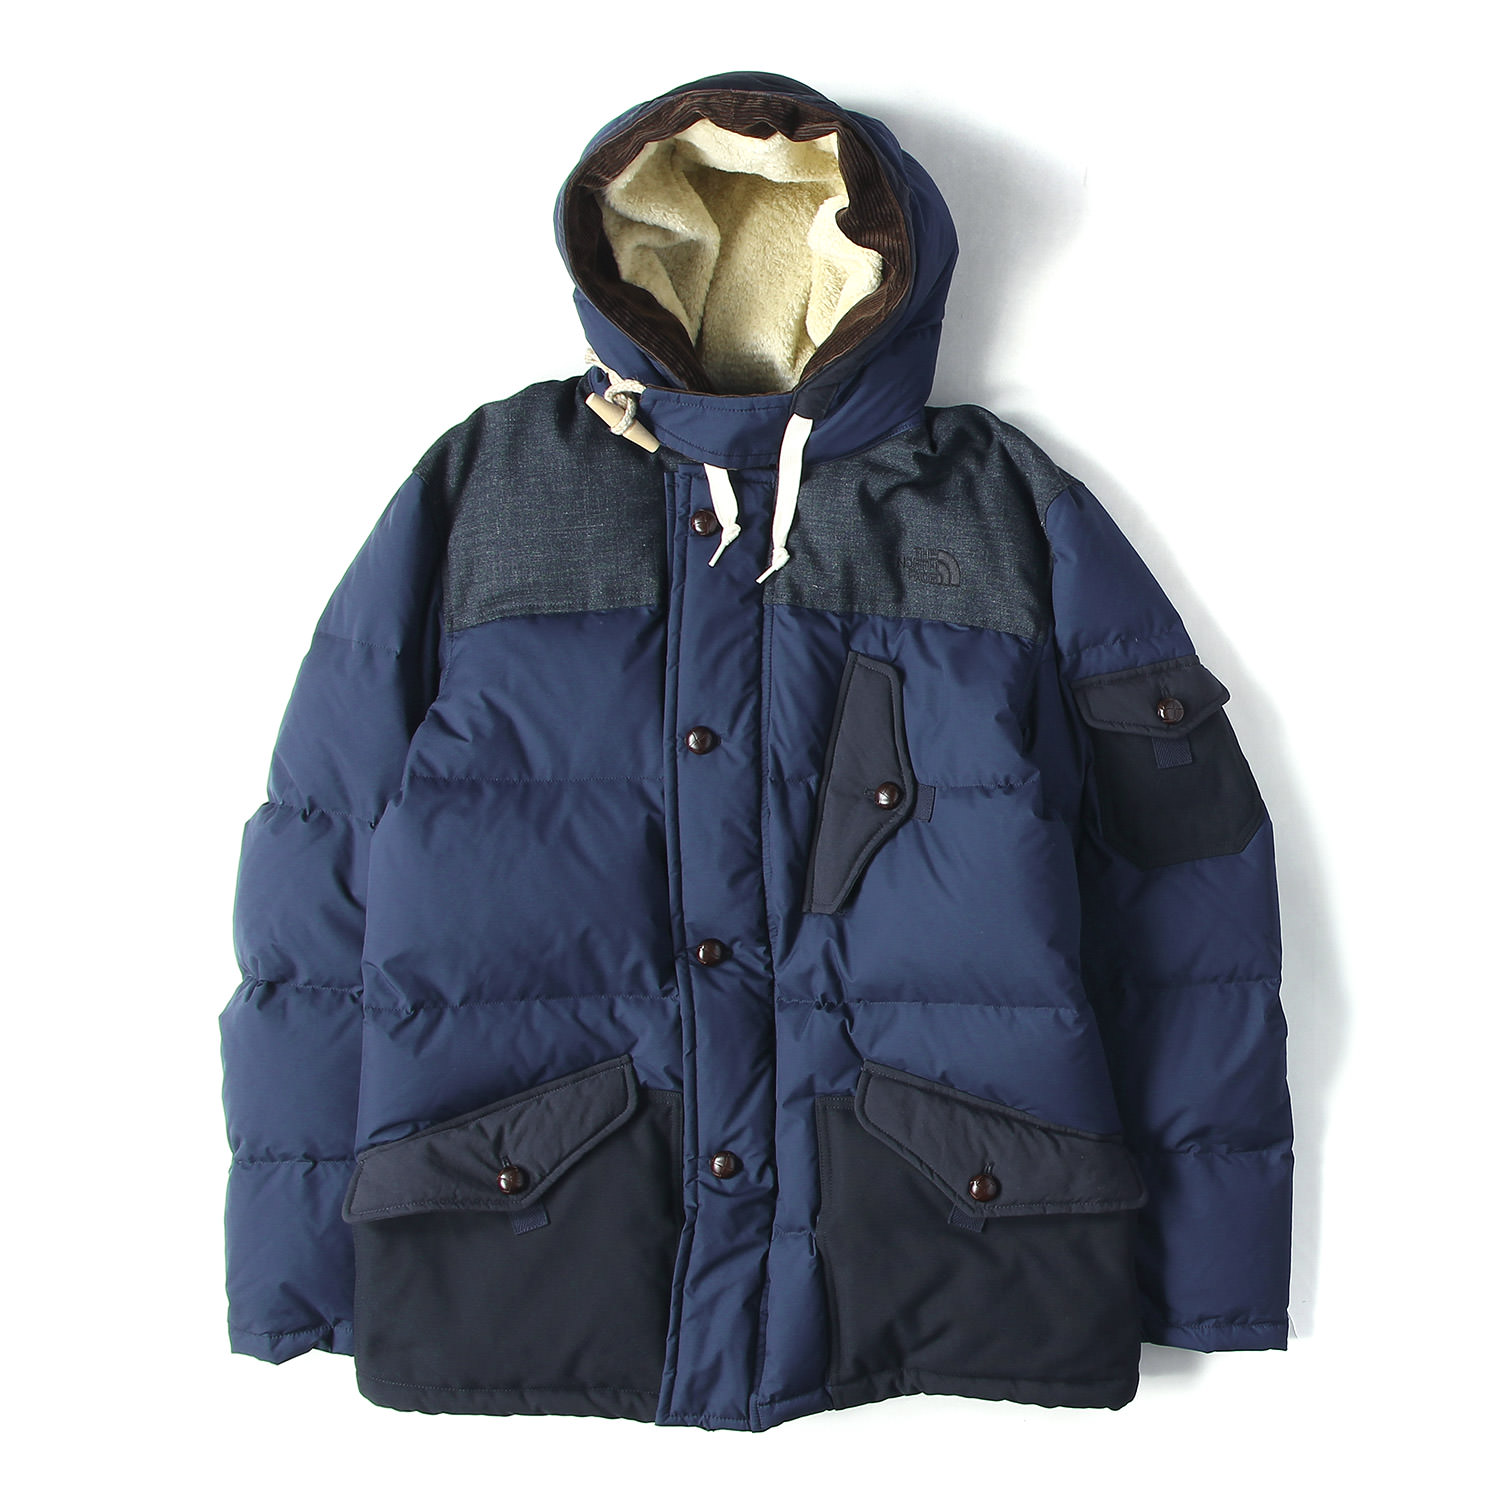 17A/W ×THE NORTH FACE GORE WINDSTOPPER N-3Bタイプナイロンフライトダウンコート